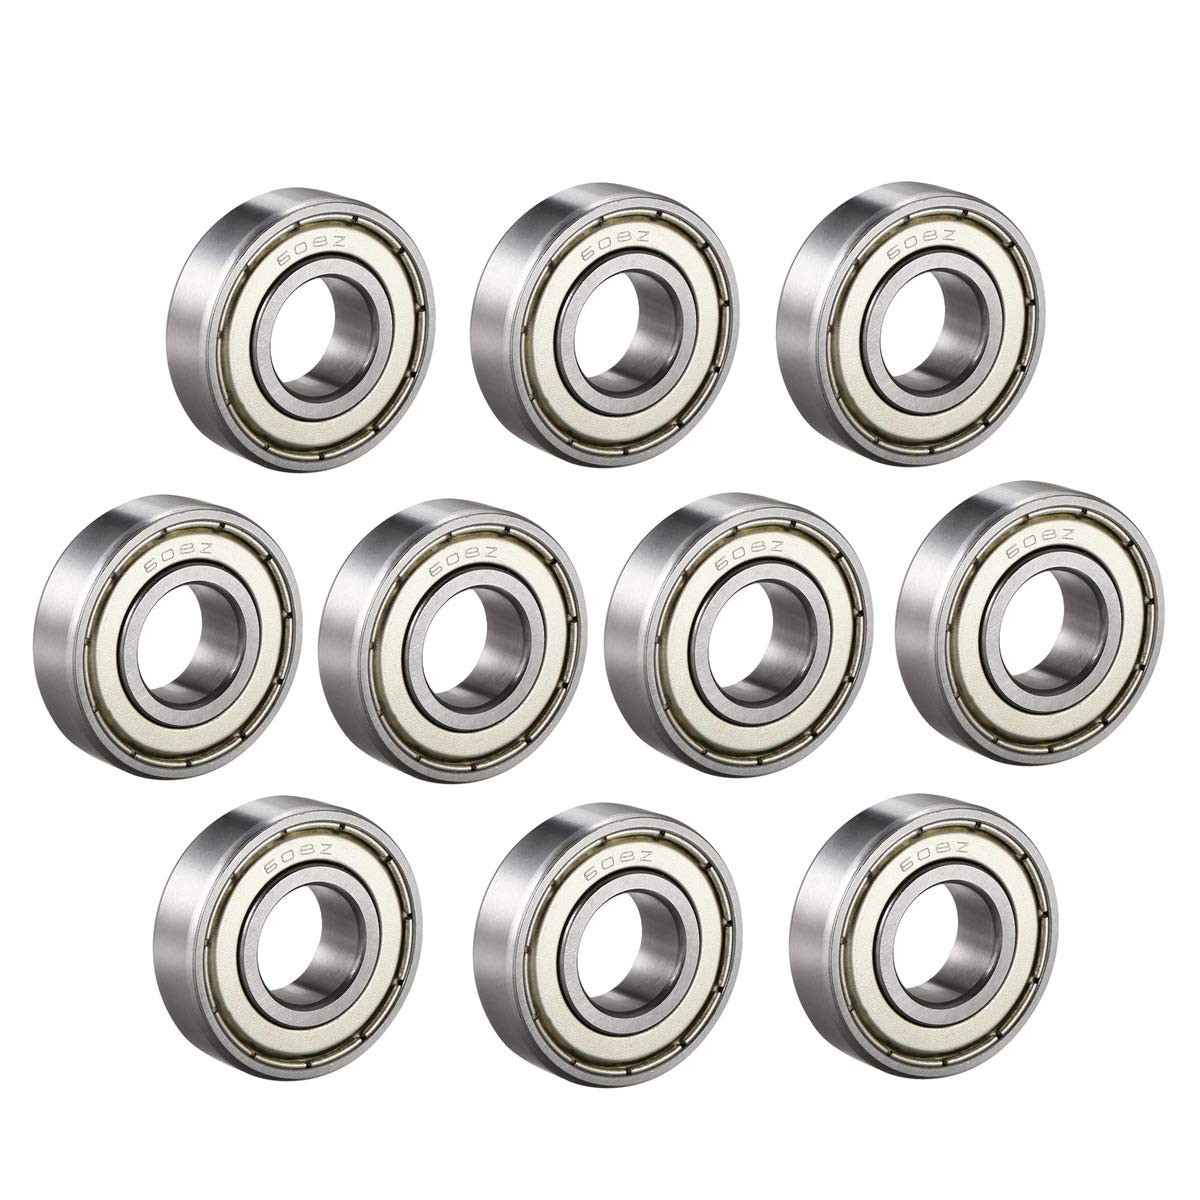 Auxcell 608Z Deep Groove Ball Bearing Double Shield 608ZZ 608 2Z 80018 8mm x 22mm x 7mm Carbon Steel Bearings Pack of 10